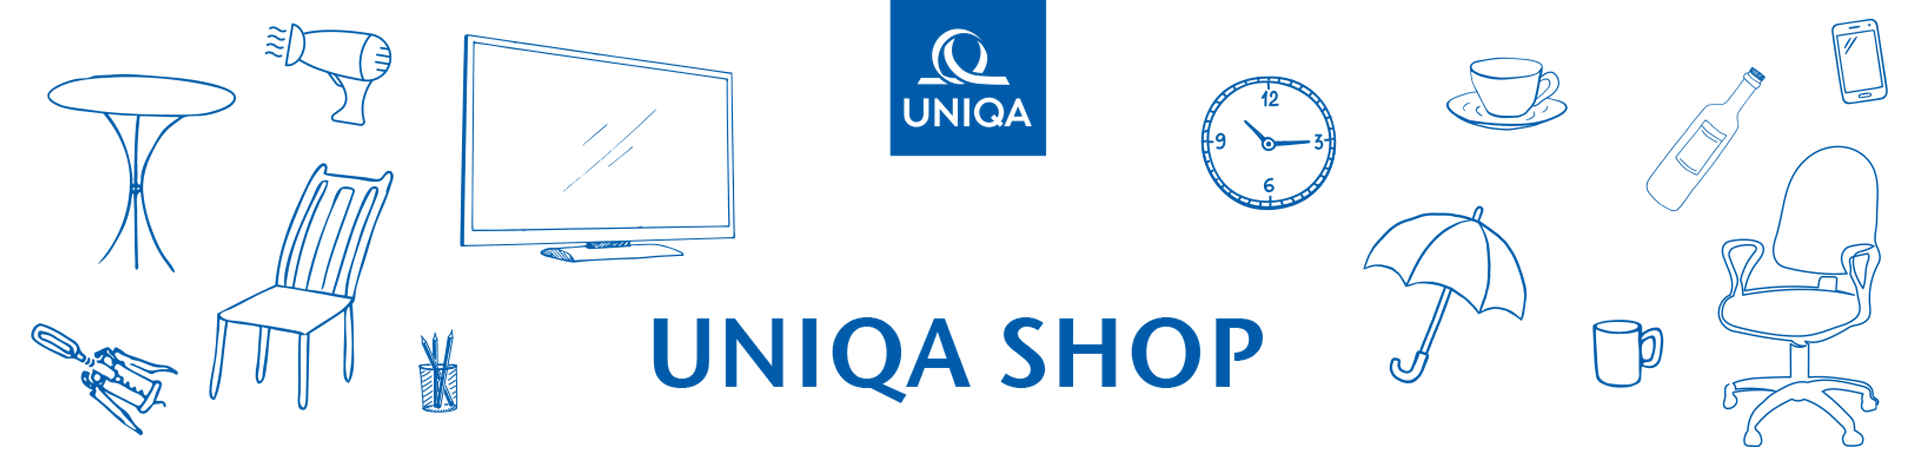 uniqa_shop_main _banner